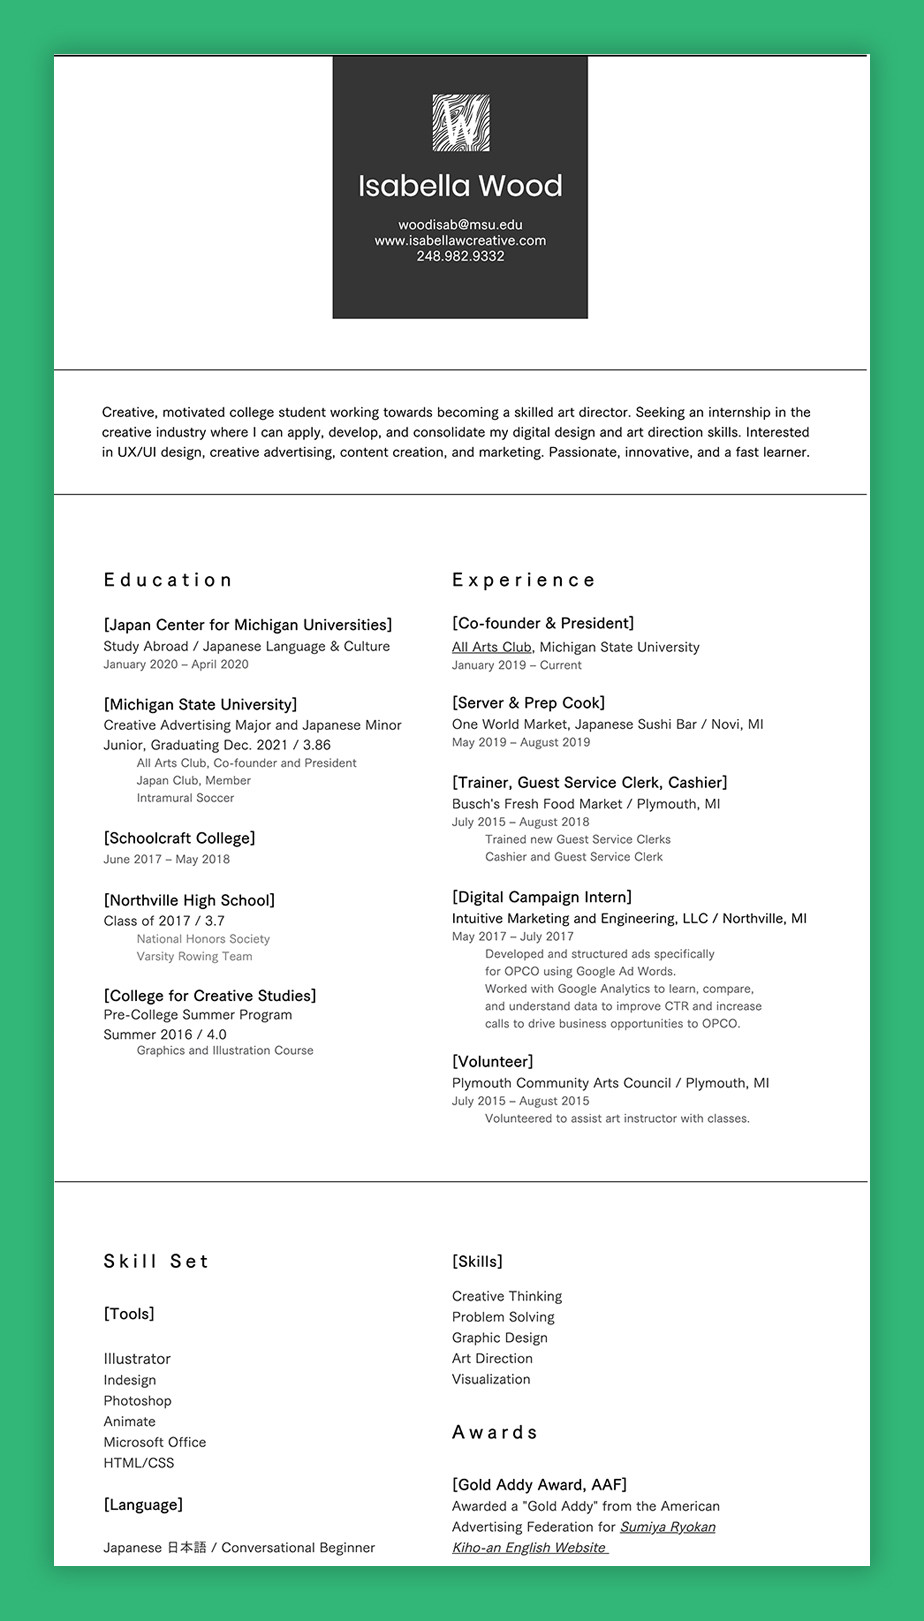 Graphic design resume example by Isabella Wood